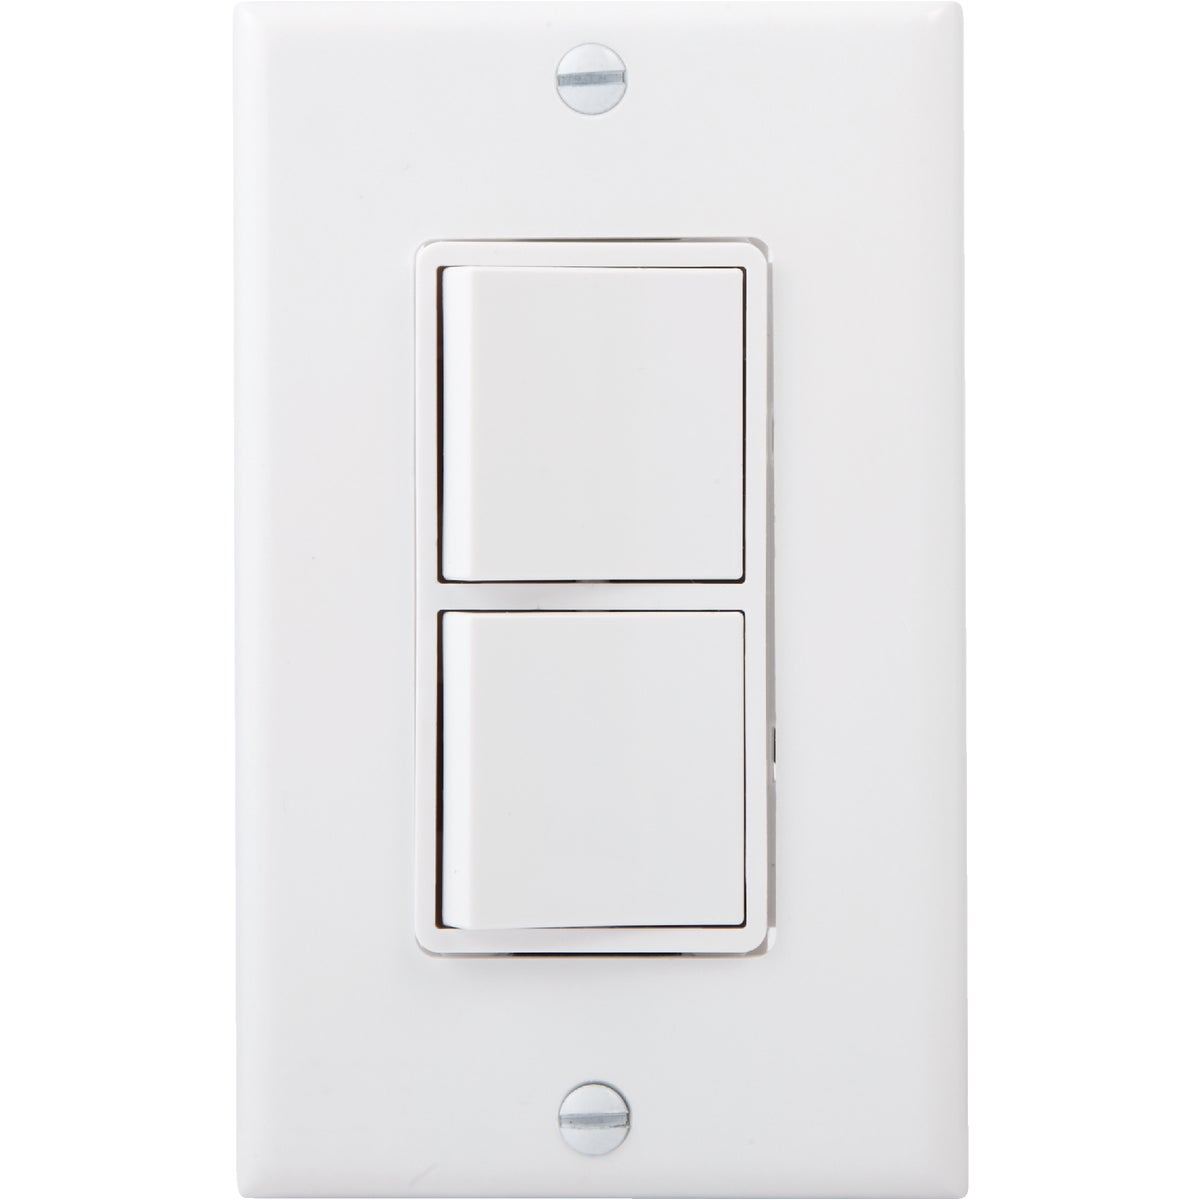 WHT DBL SWITCH - 8785679W by Leviton Mfg Co